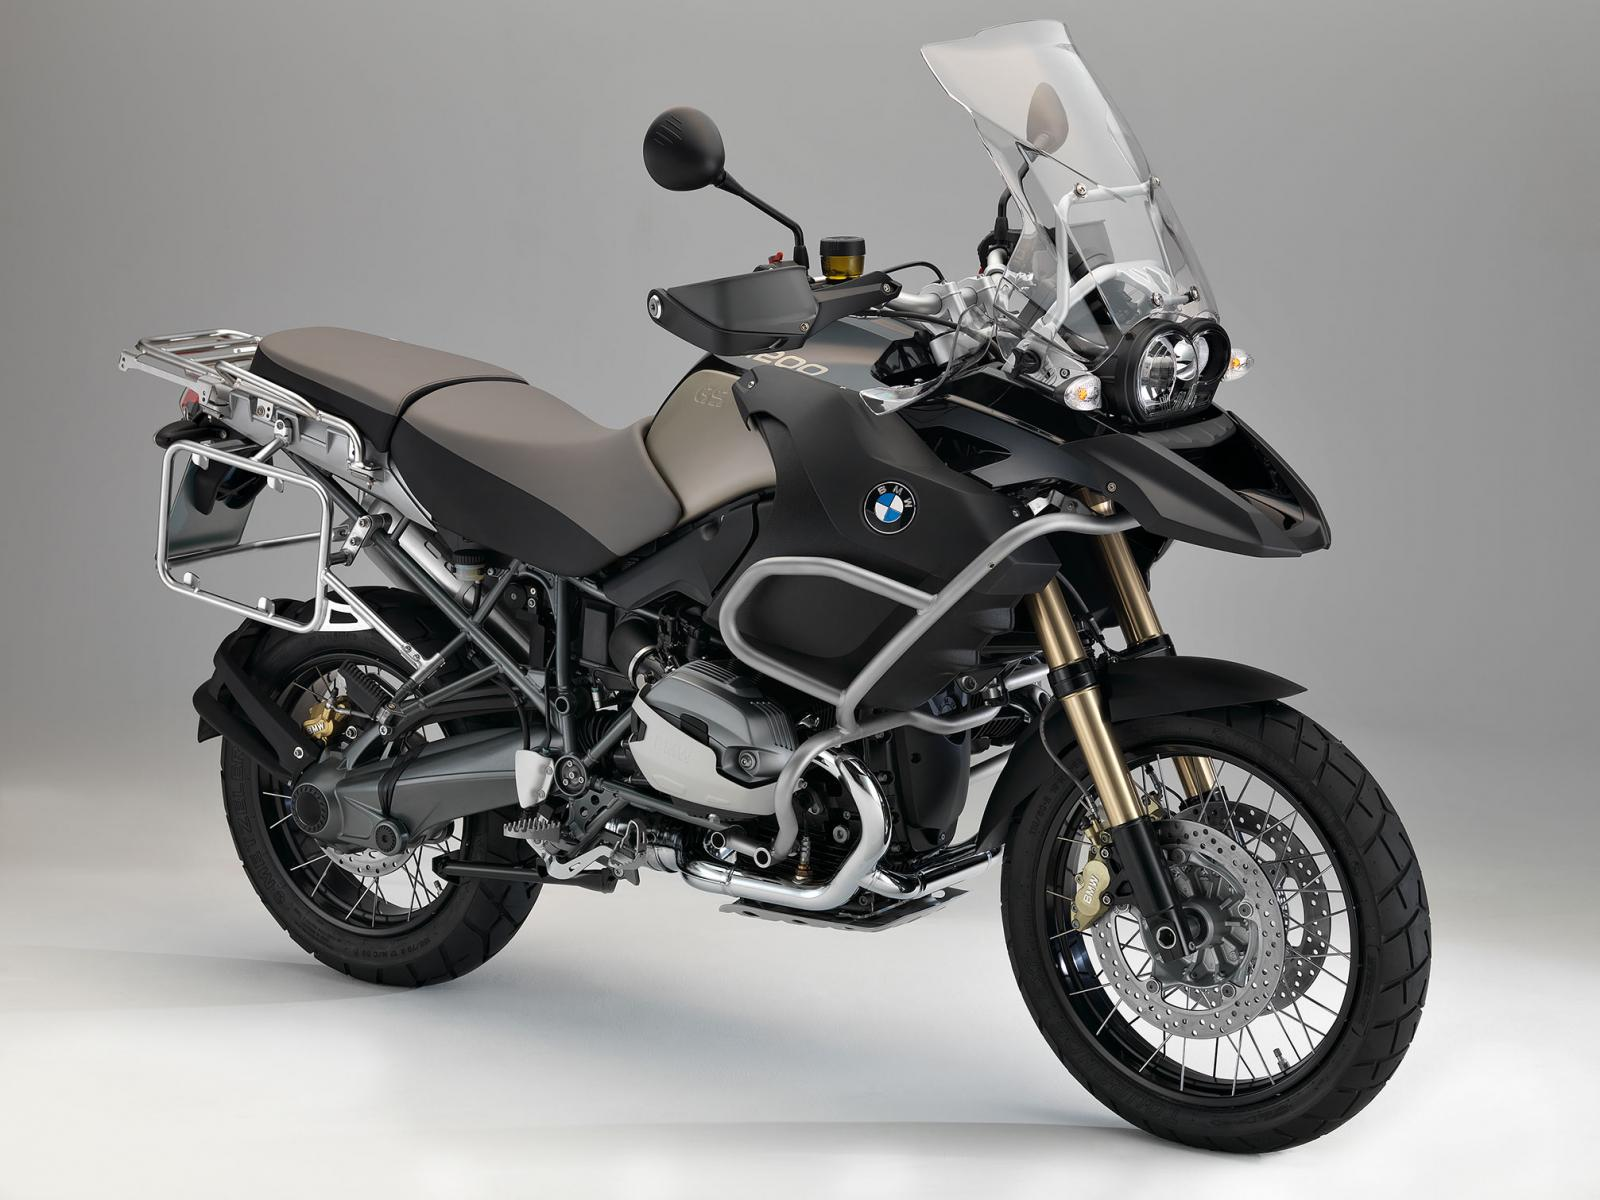 2012 bmw r1200gs adventure moto zombdrive com. Black Bedroom Furniture Sets. Home Design Ideas